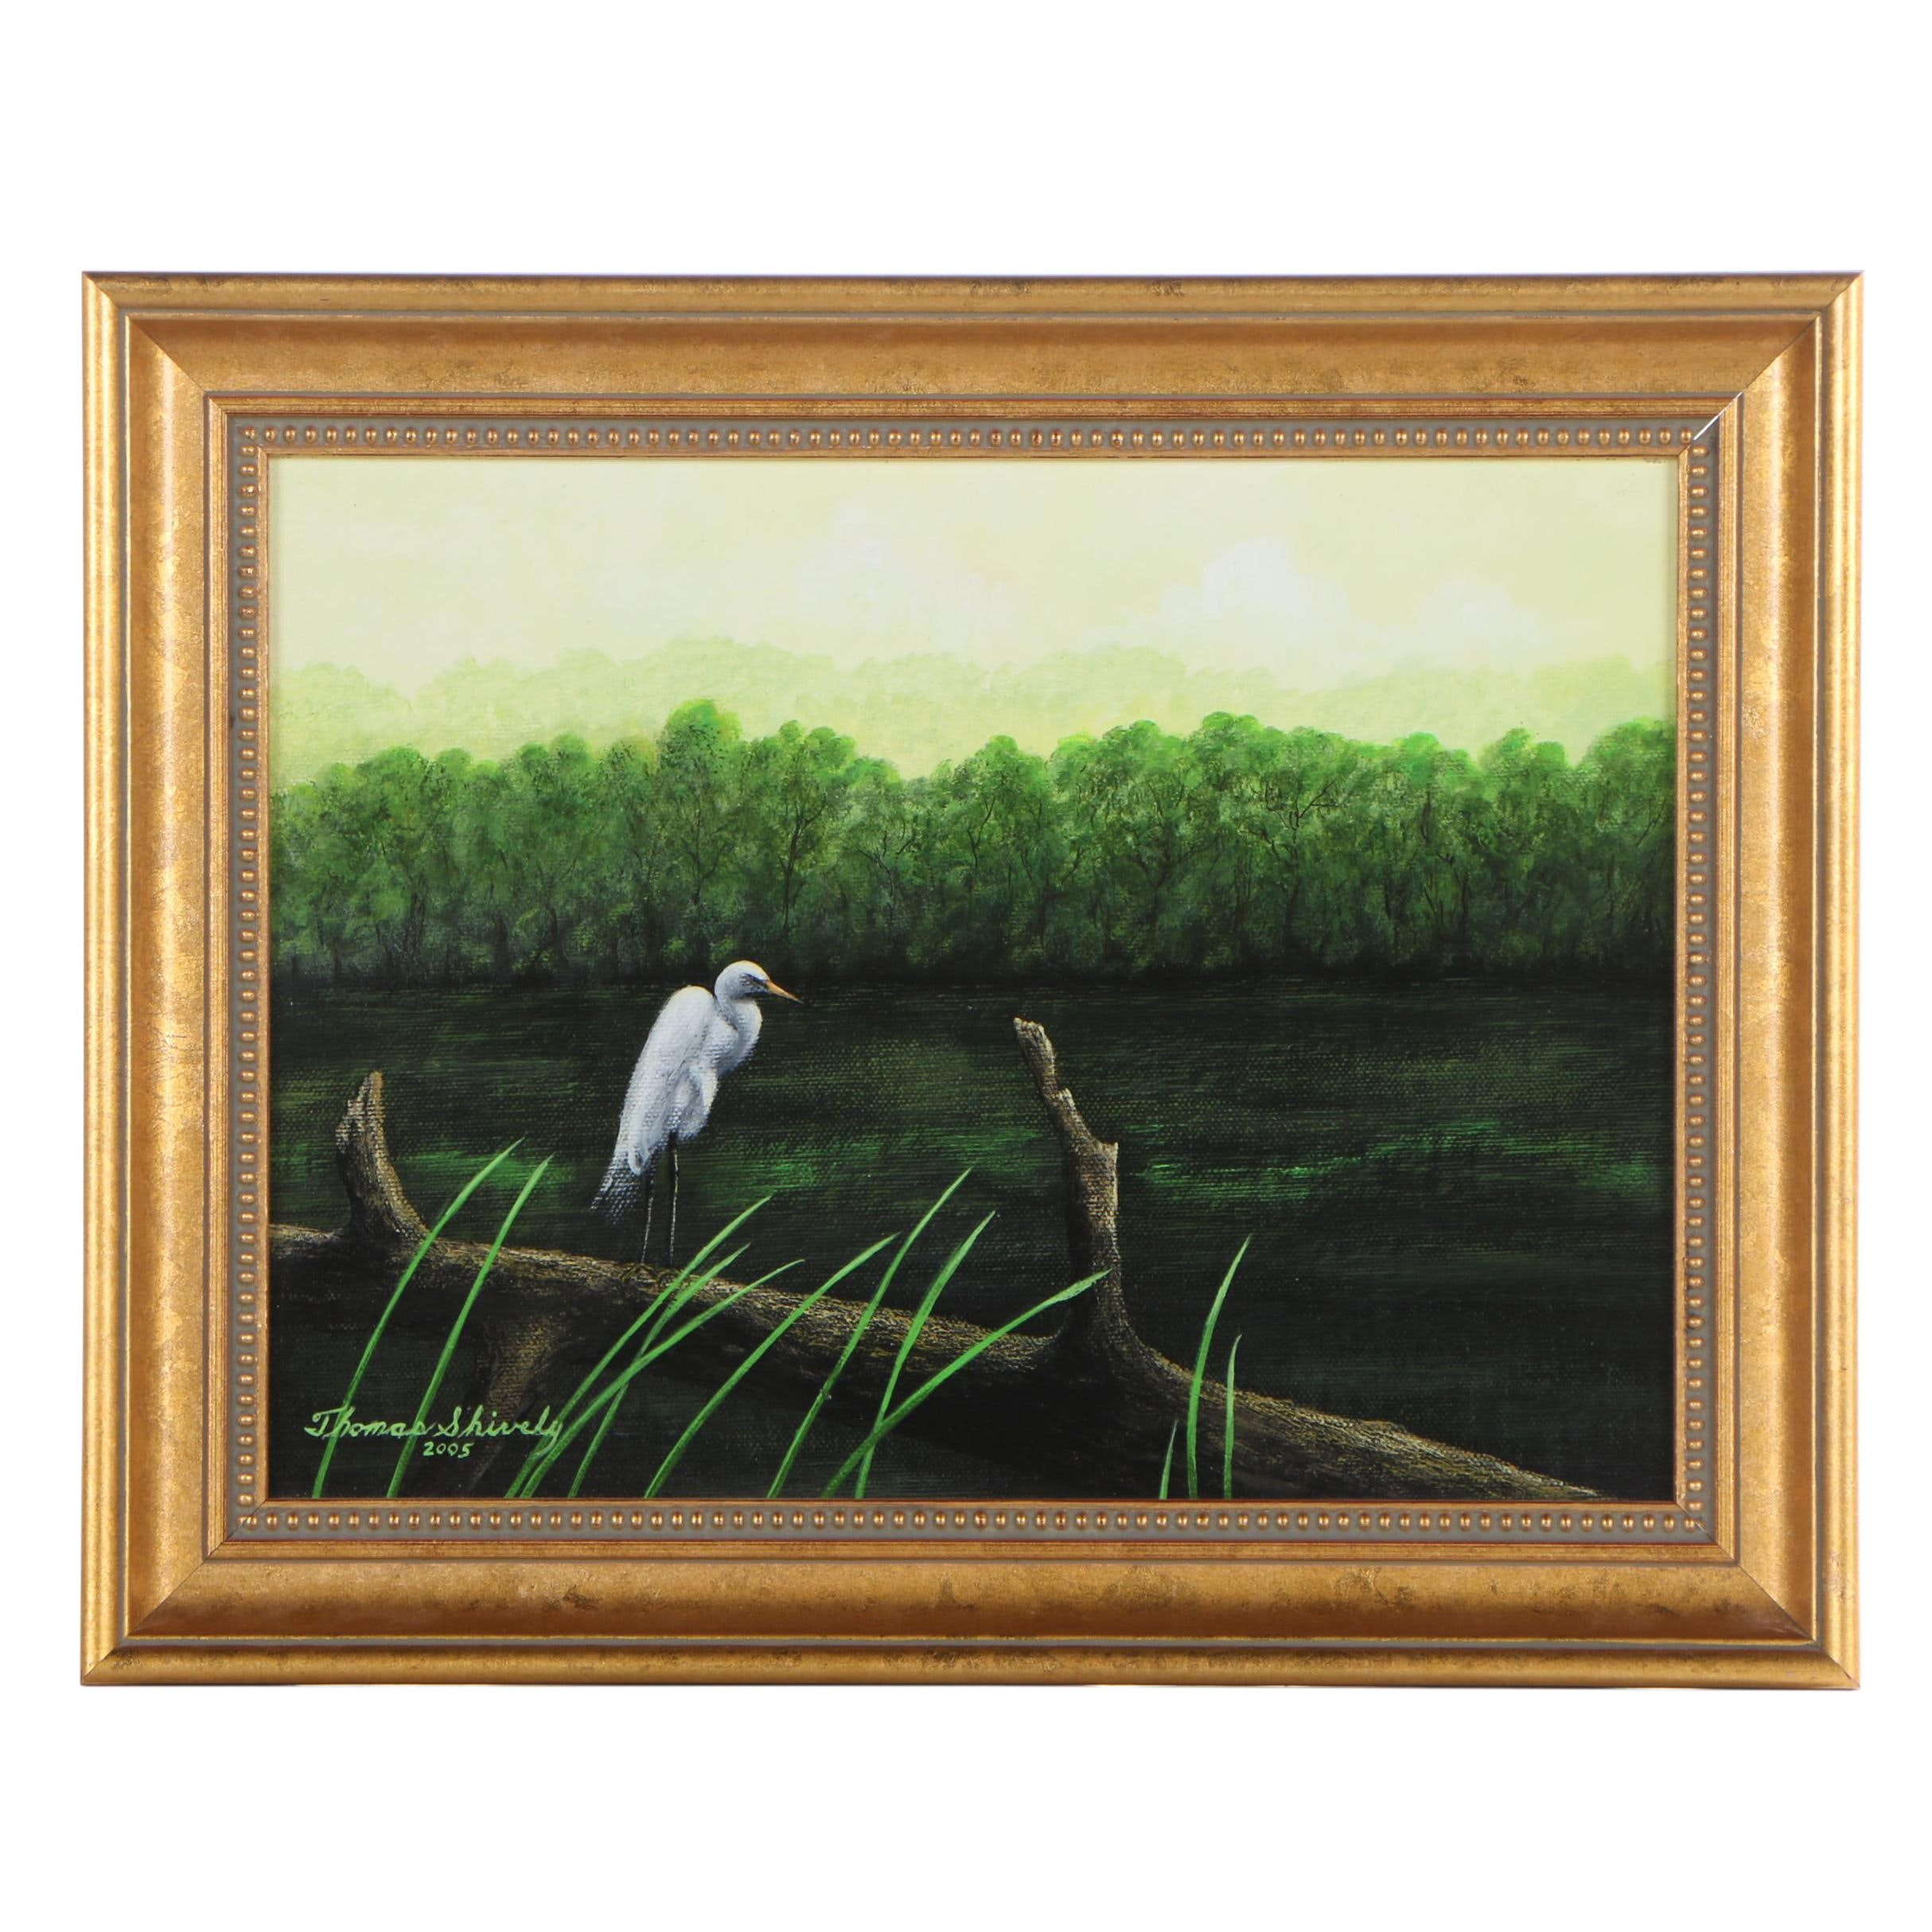 Thomas H. Shively 2005 Oil Painting